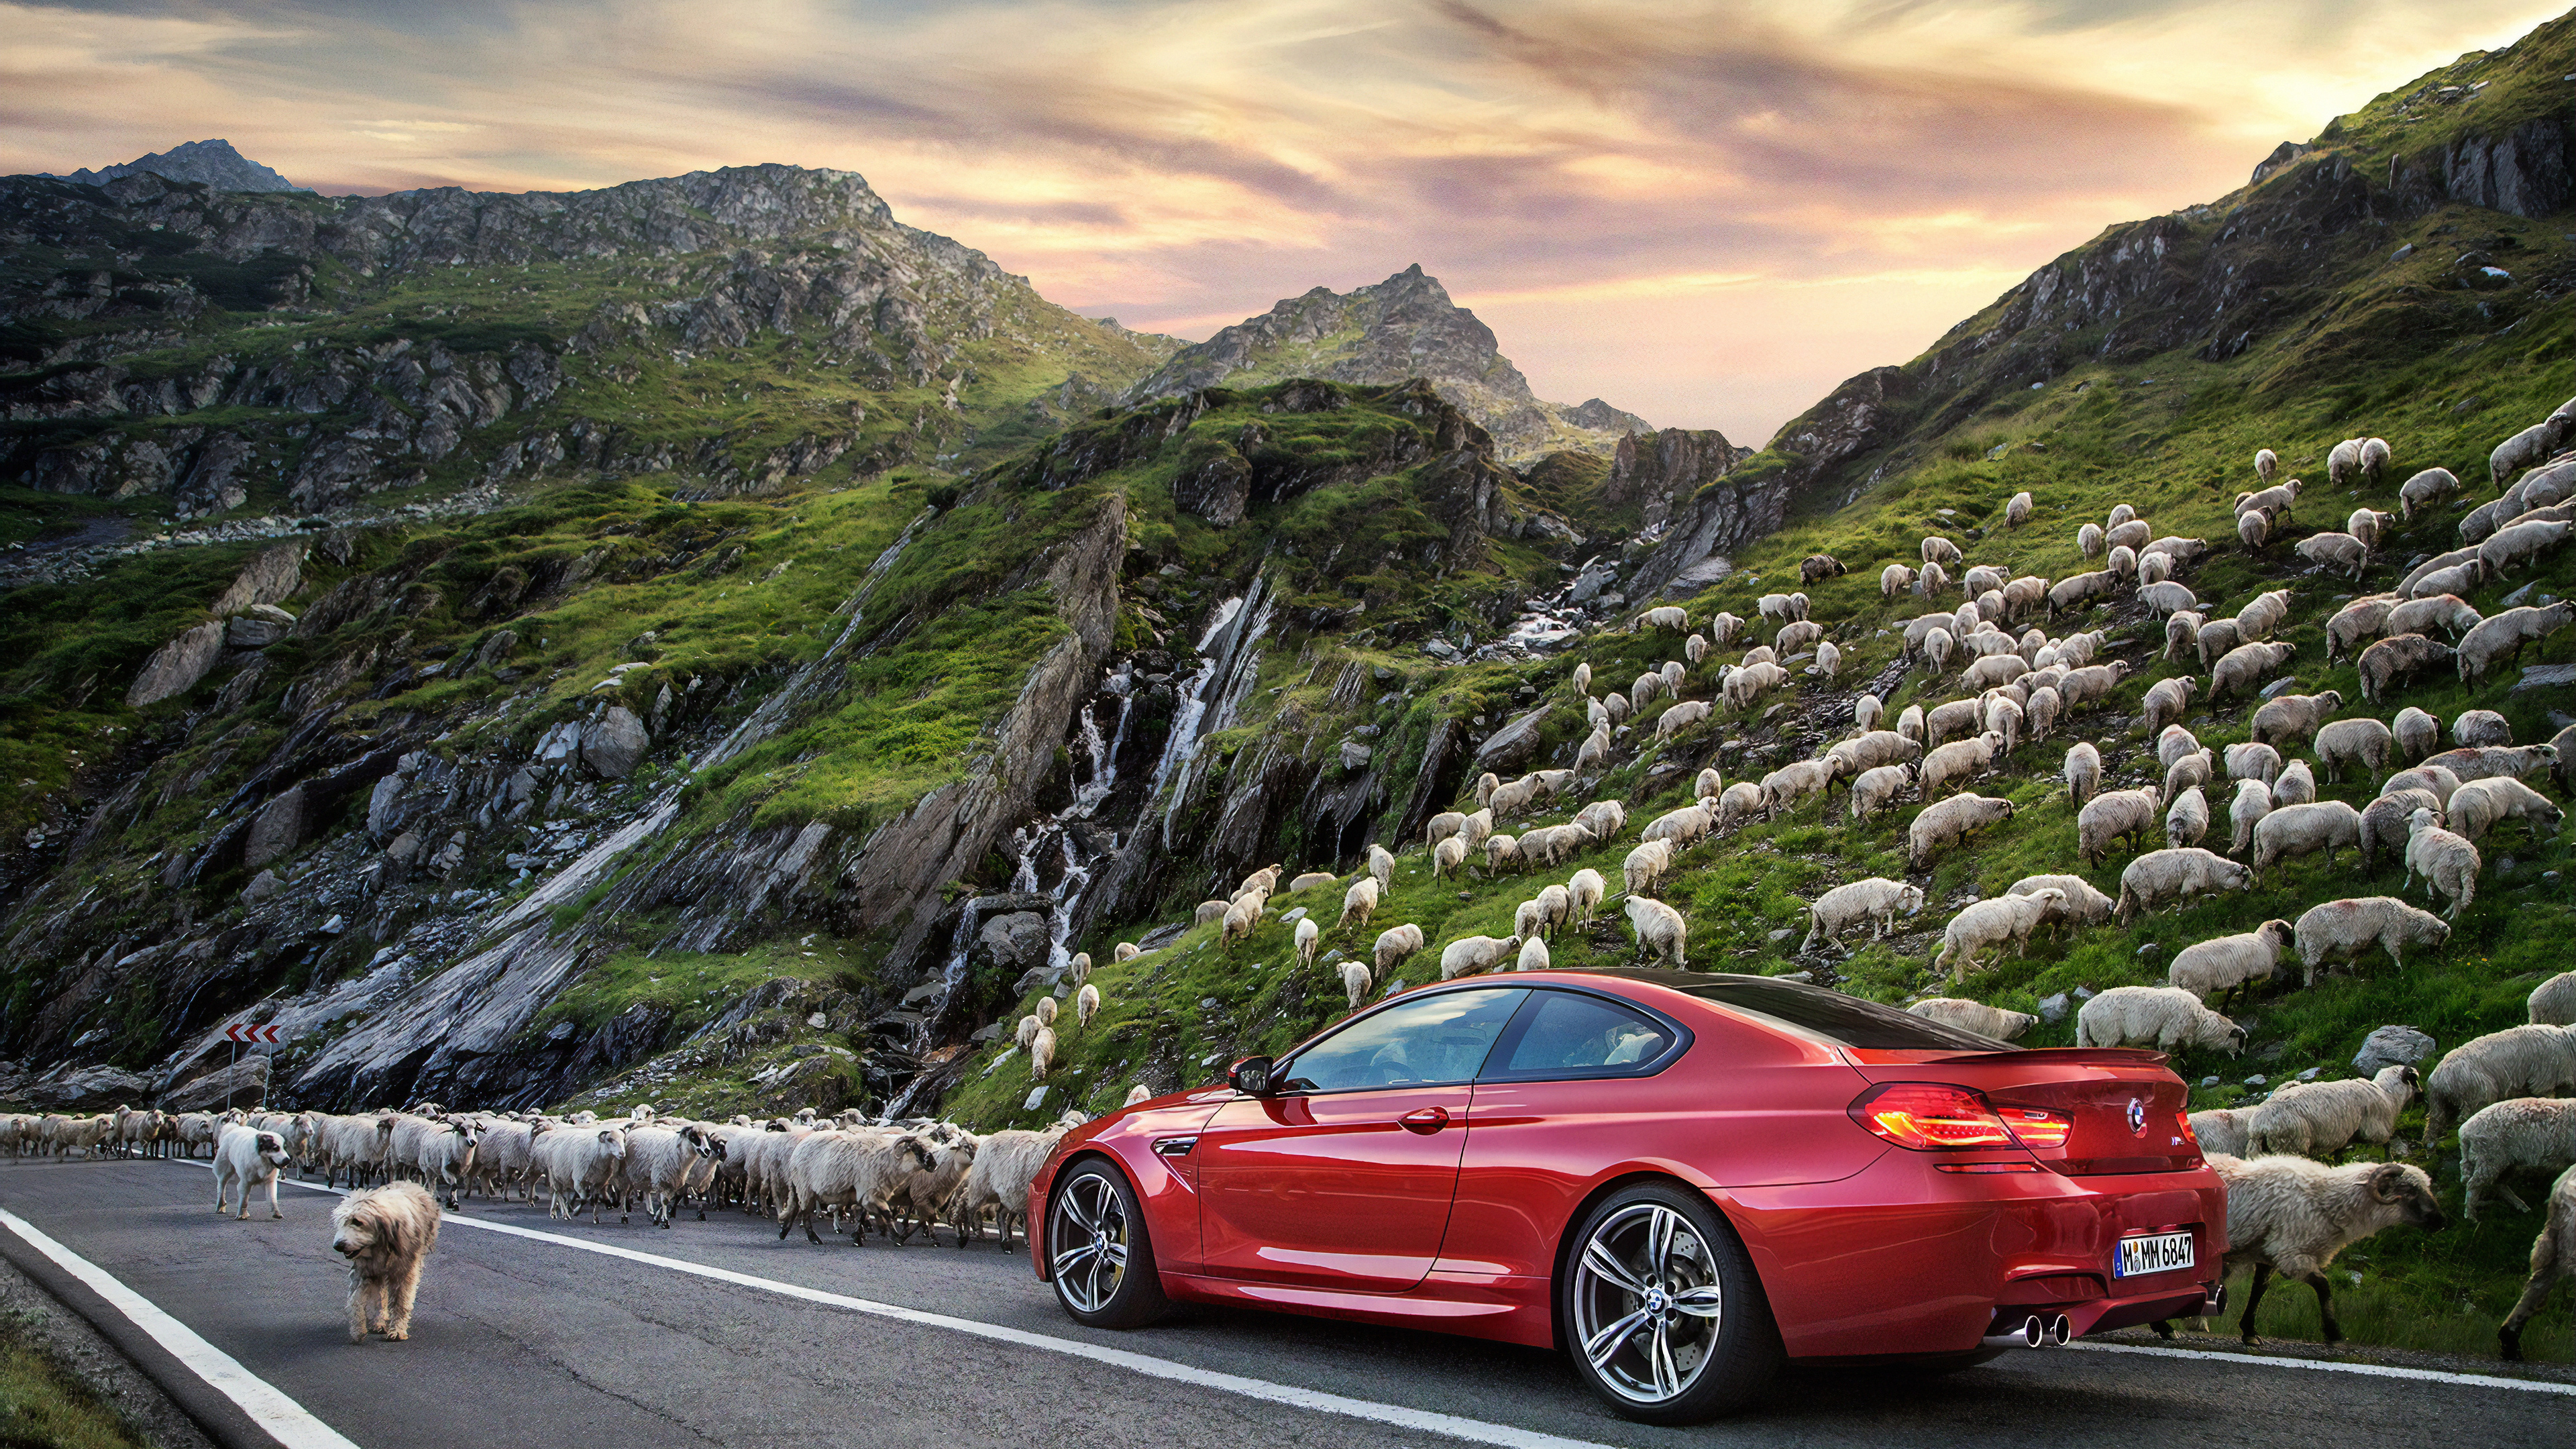 bmw m6 2019 1565054850 - Bmw M6 2019 - hd-wallpapers, cars wallpapers, bmw wallpapers, bmw m6 wallpapers, behance wallpapers, 4k-wallpapers